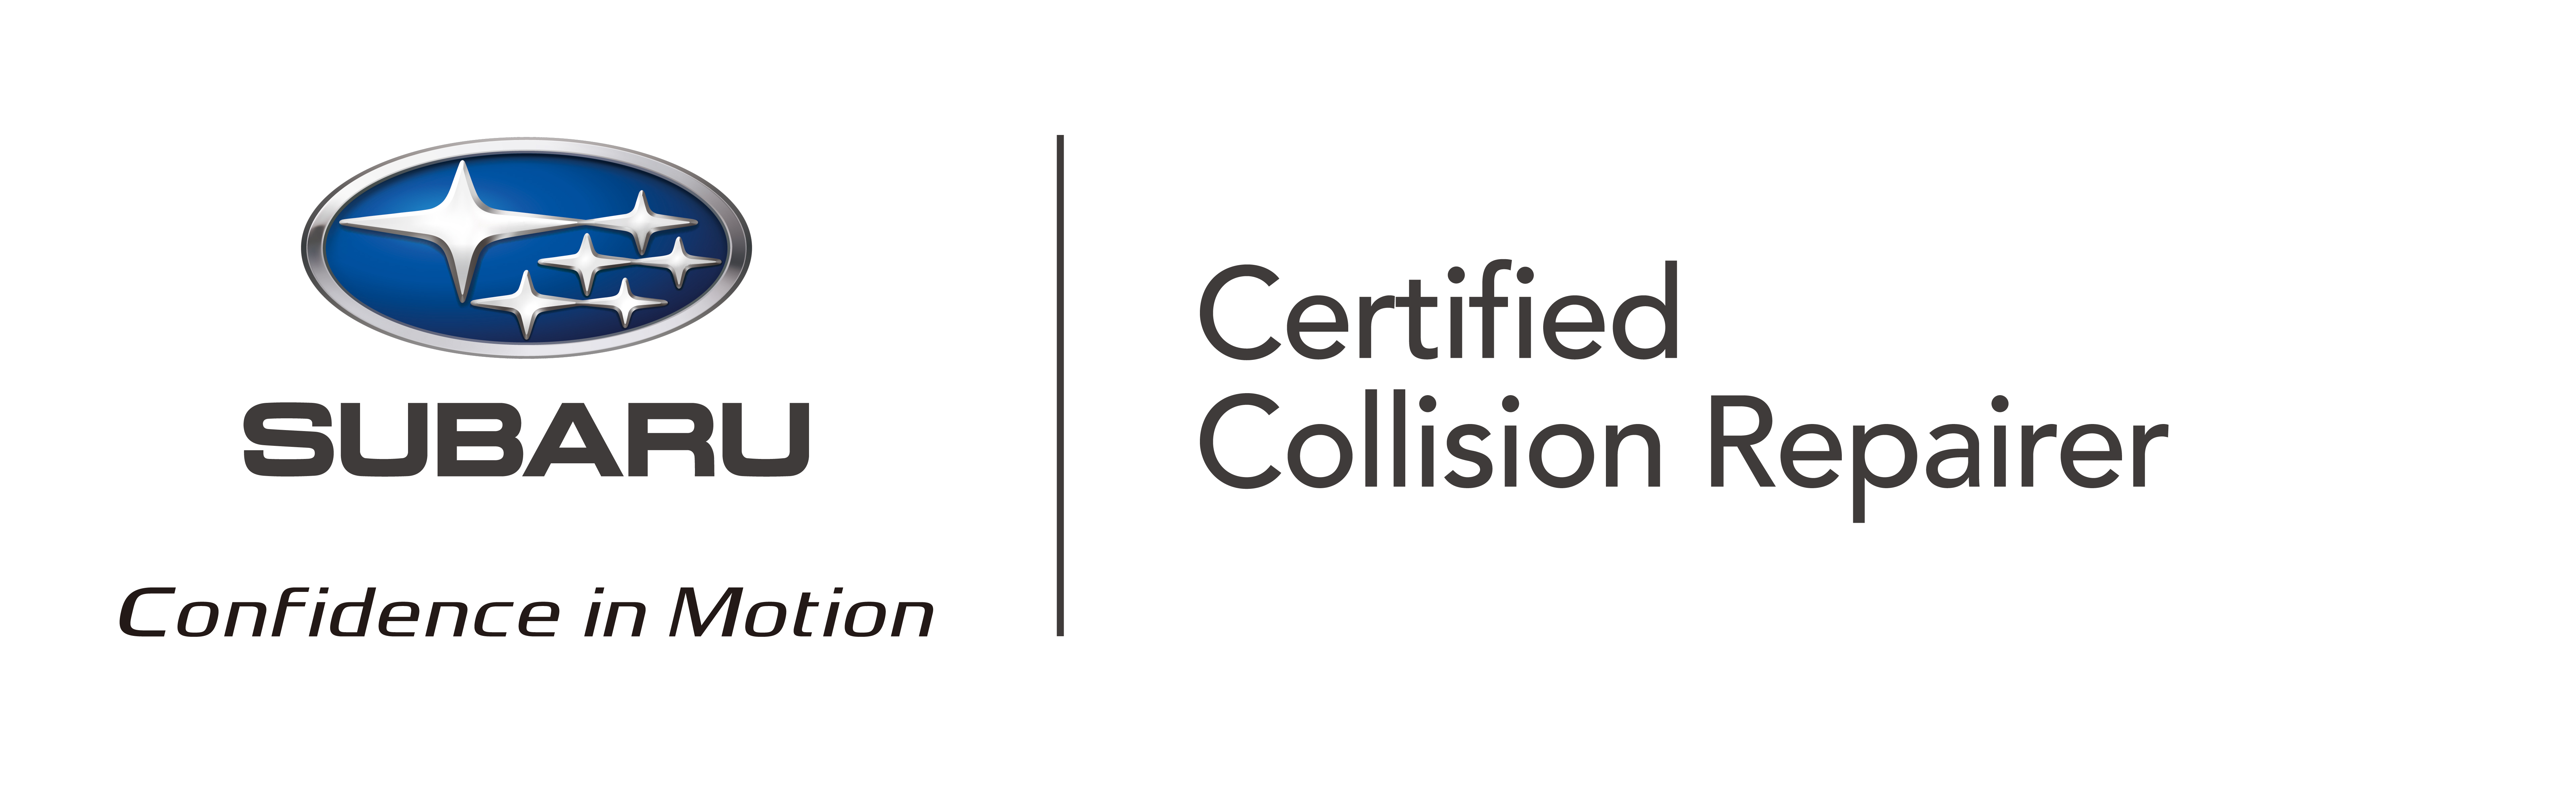 Certified Collision Repairer